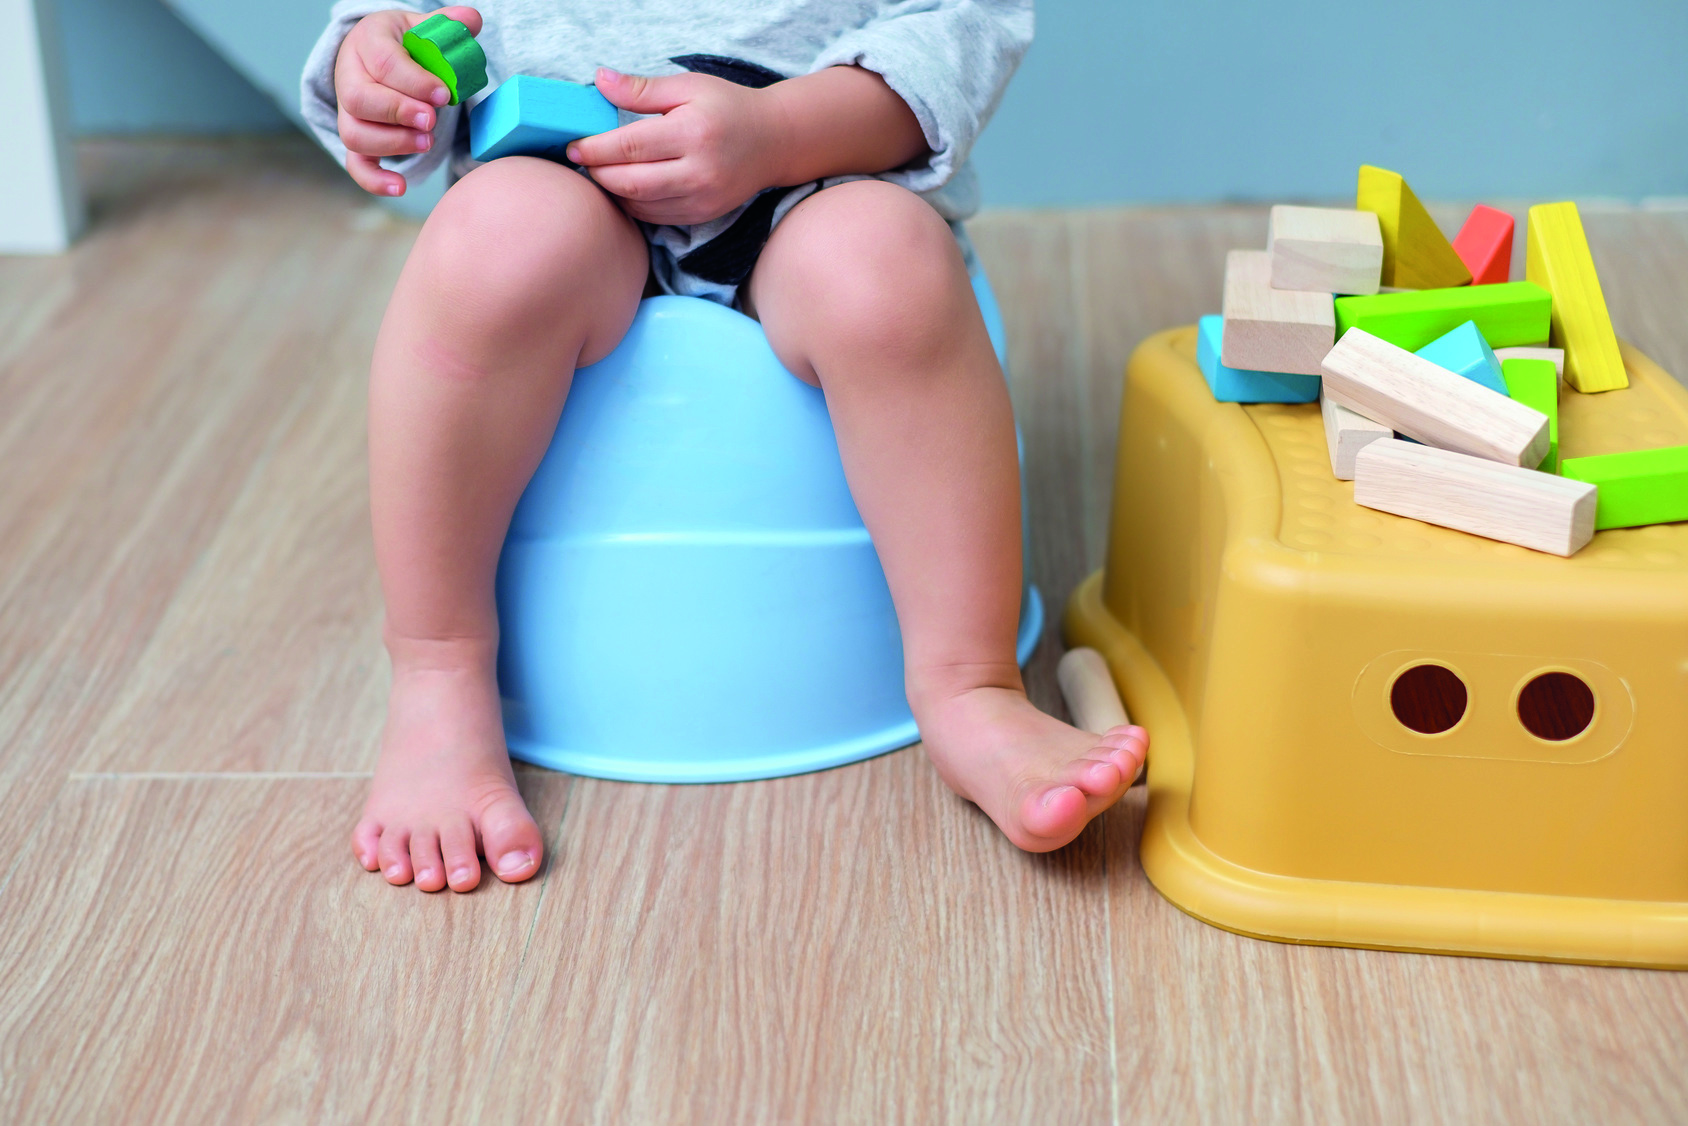 Closeup of legs of cute little Asian 18 months old toddler baby boy child sitting on potty playing with wooden blocks toy. Kid playing with educational toy & Toilet training concept. - Selective focus